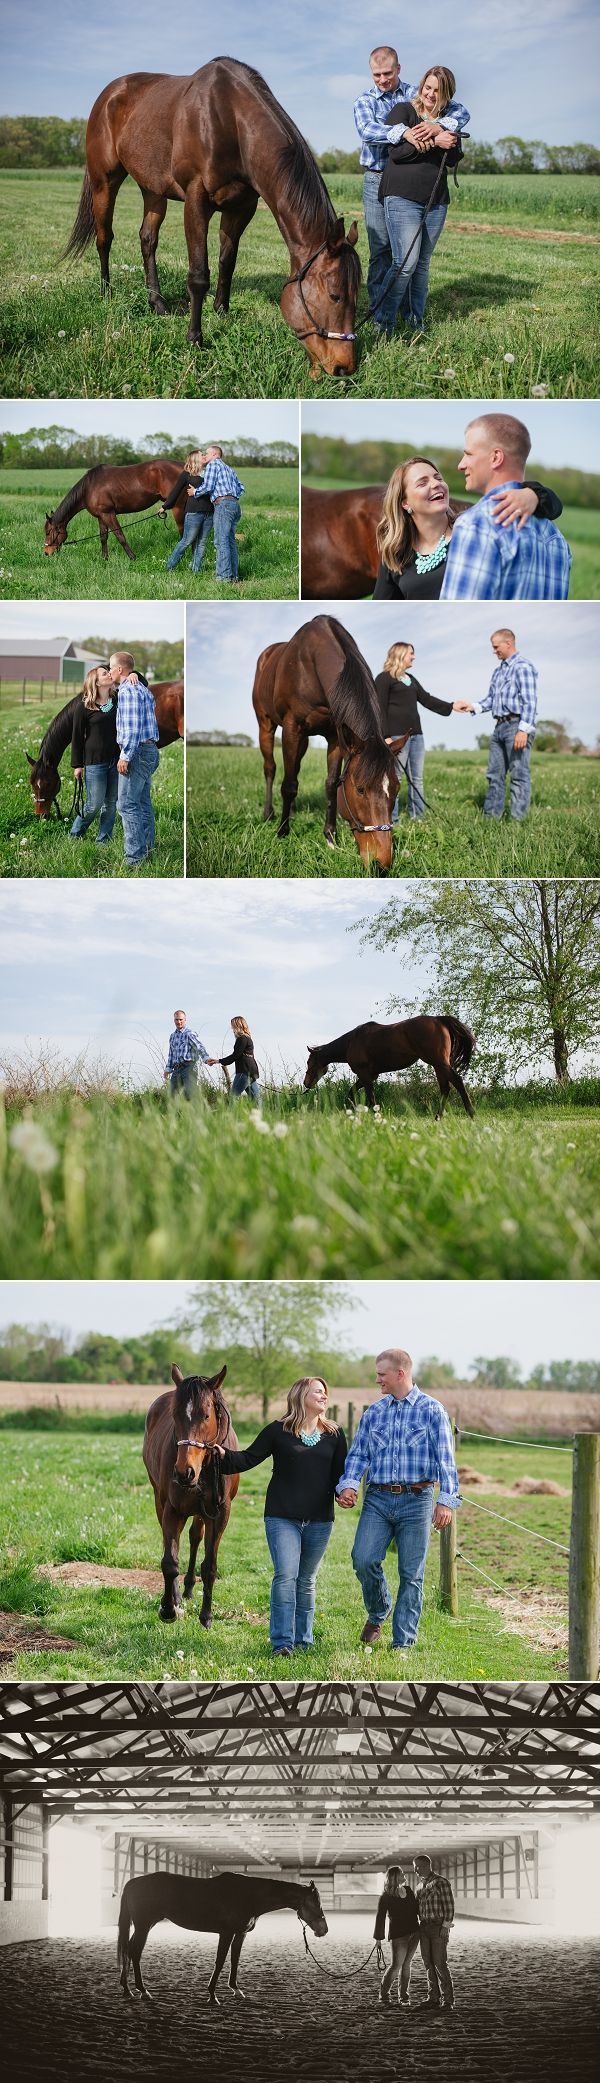 Jessica Miller Photography Engagement photography with horse